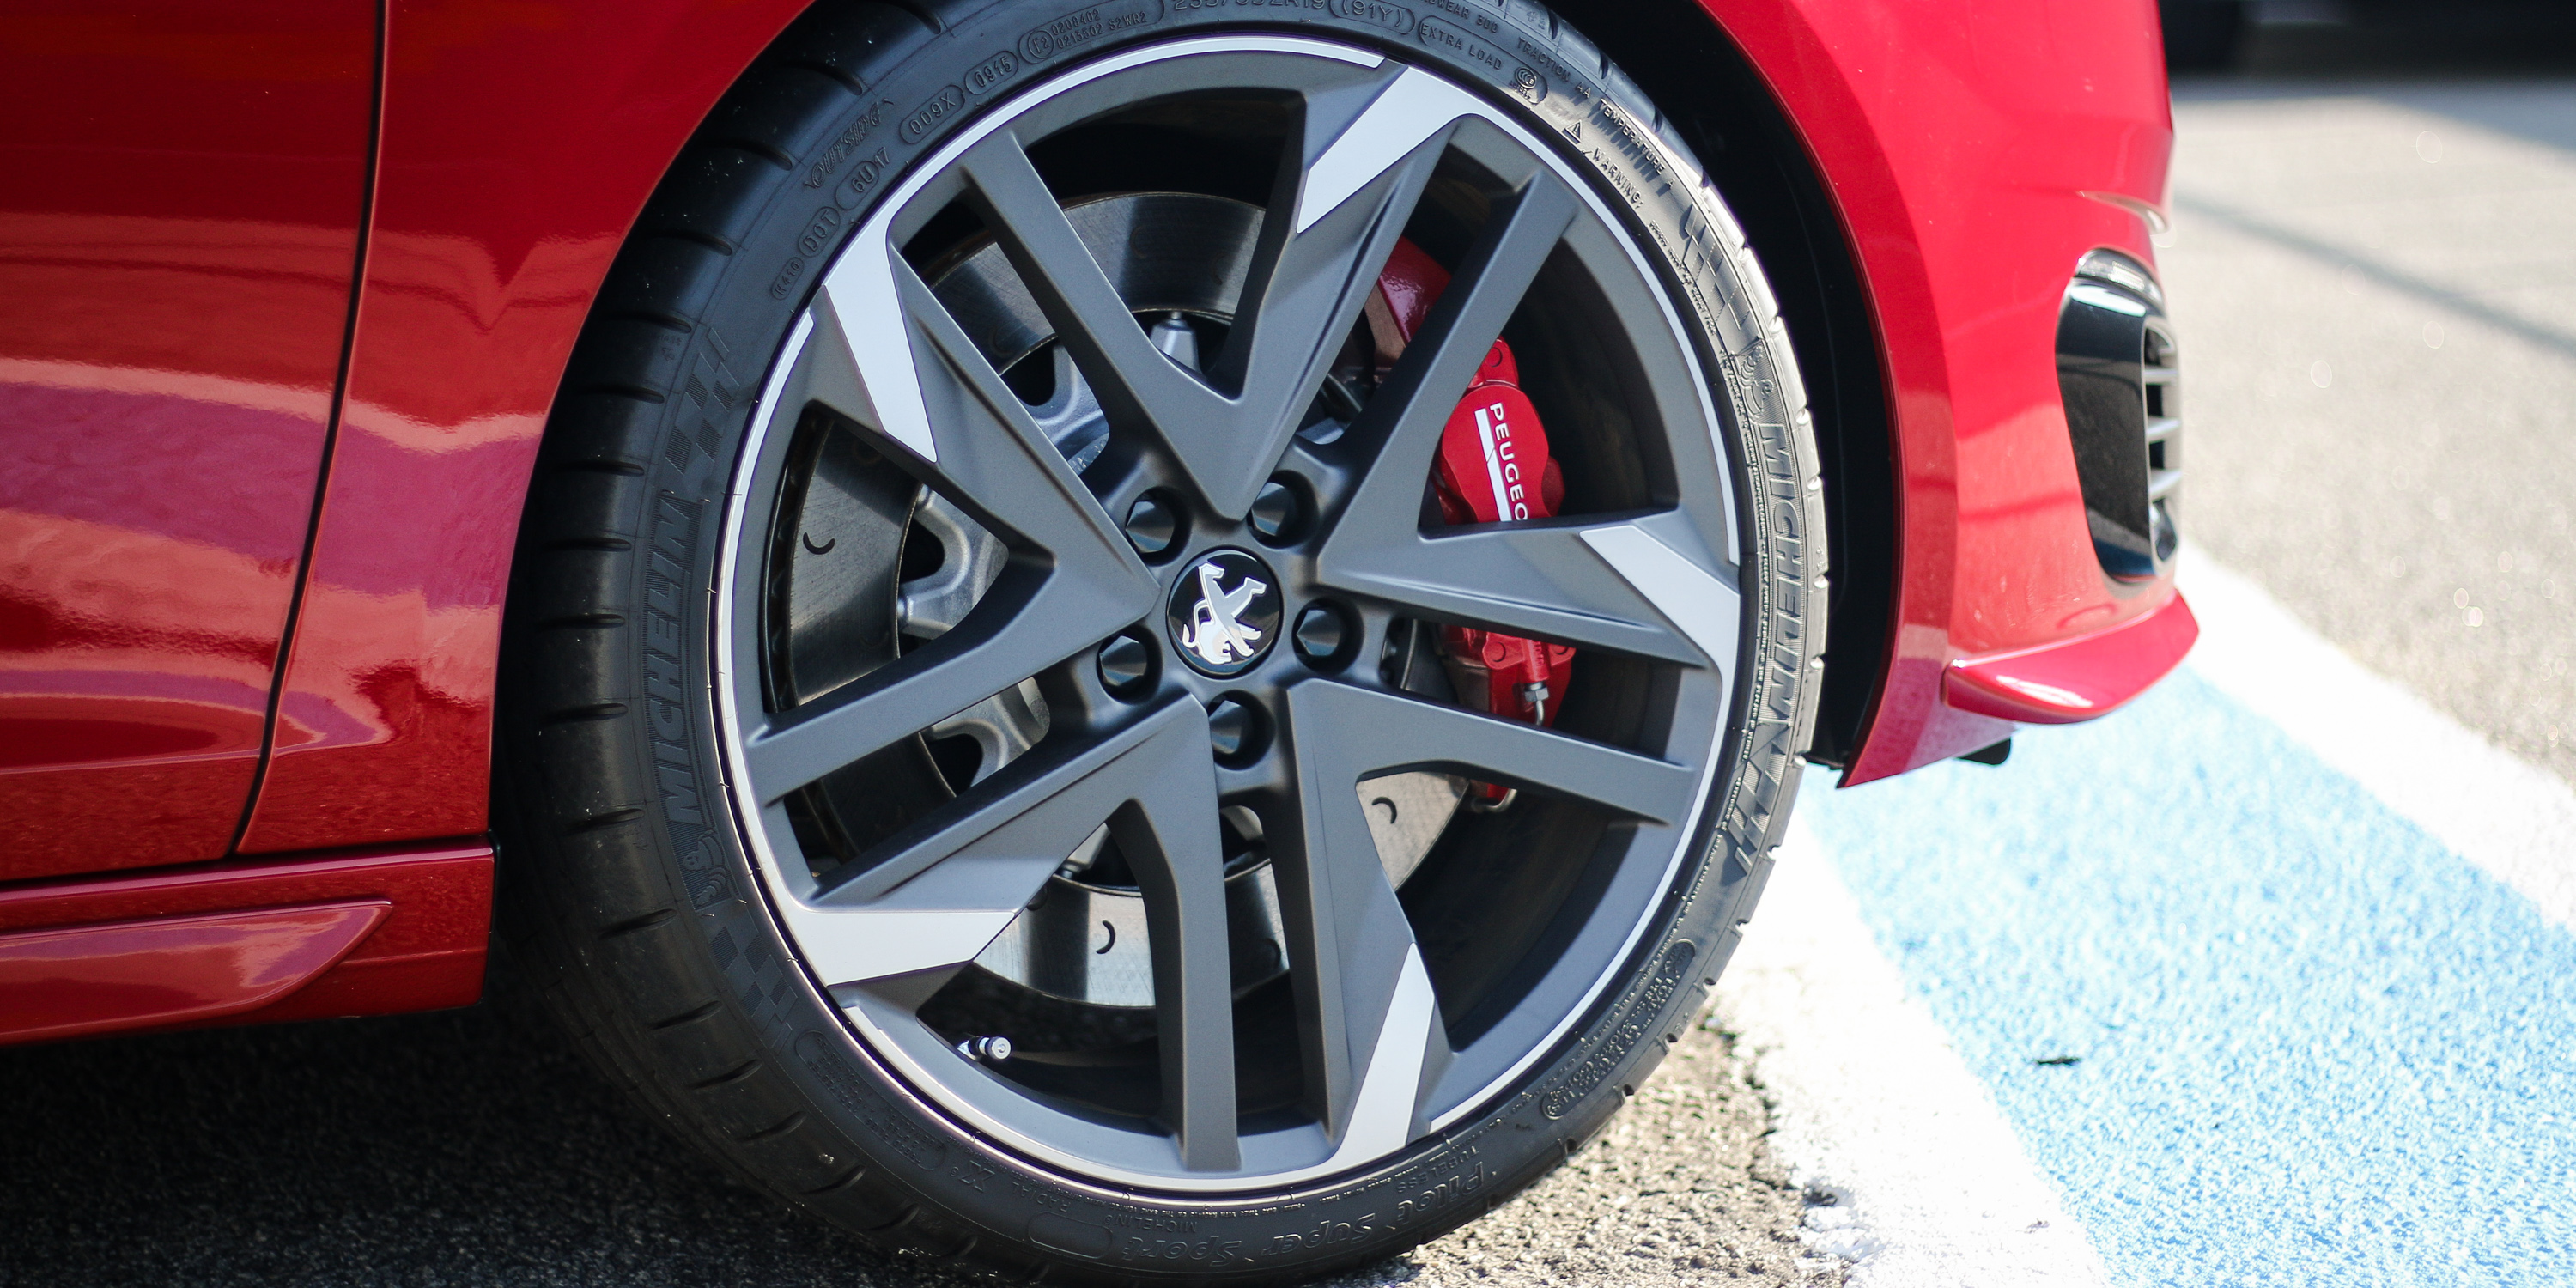 2016 Peugeot 308 Gti Wheel Trim (Photo 14 of 15)